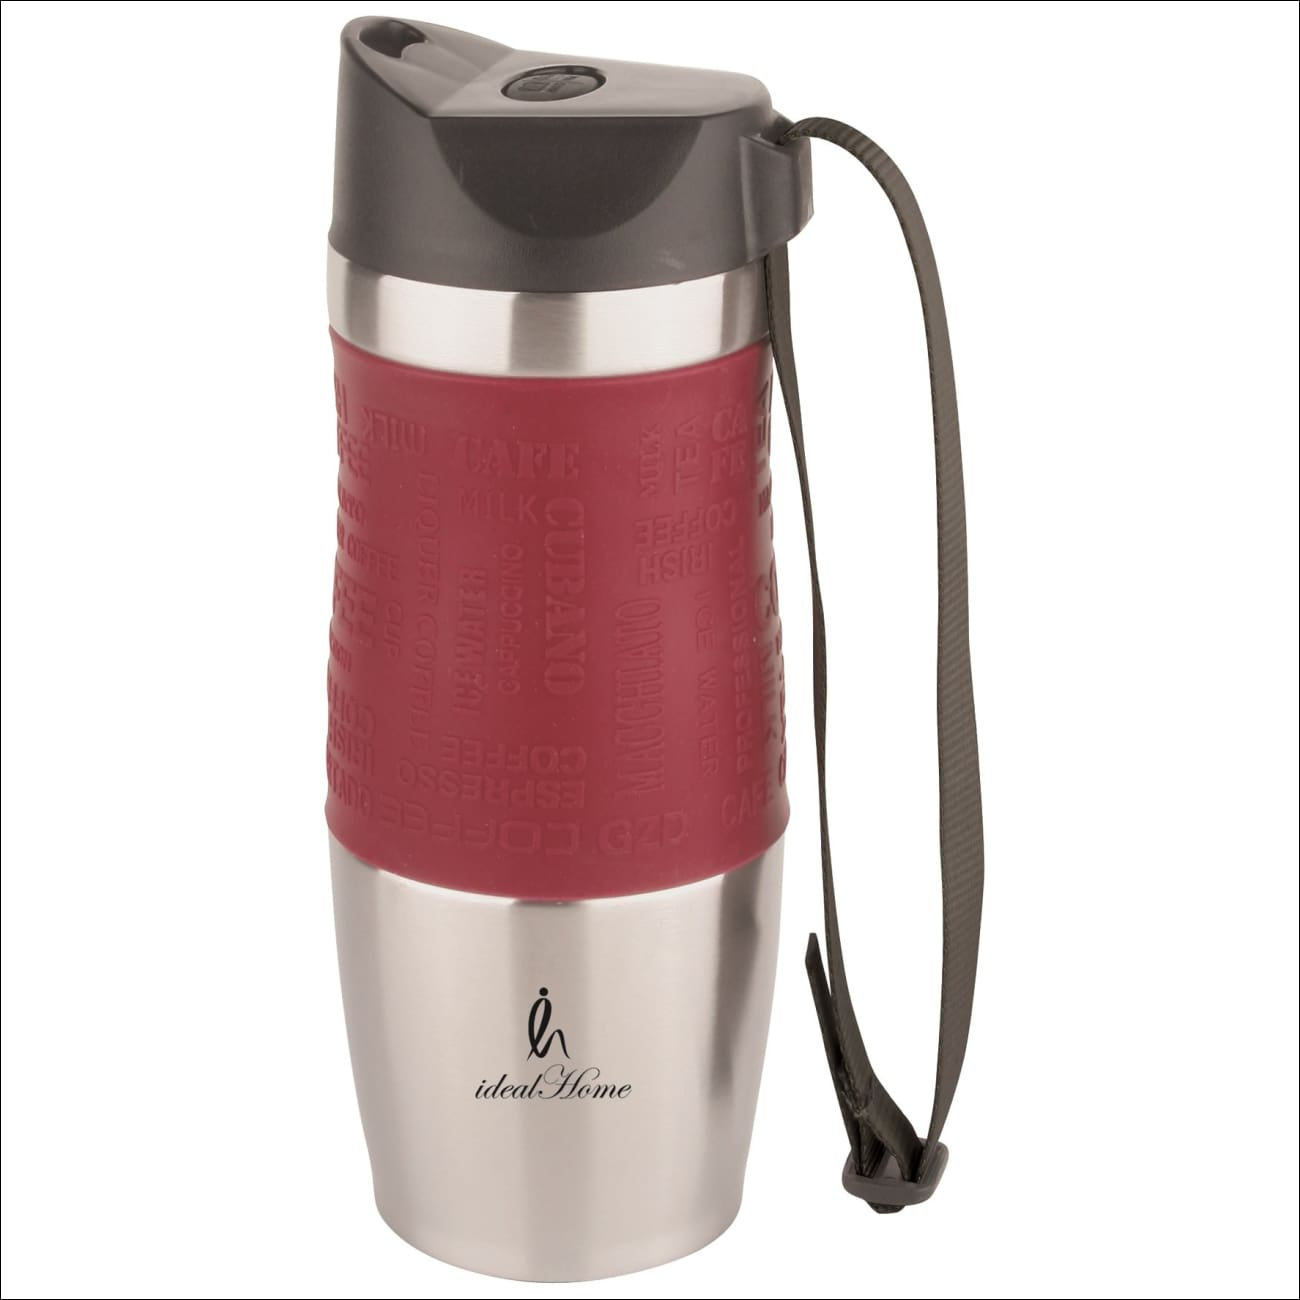 Ideal Home Stainless Steel Double Wall Insulated Vacuum Travel Mug, BPA Free- 350 ML Capacity, Leak Proof Sipper, Hot and Cold Water Bottle for 12 Hours - worldshopon-com